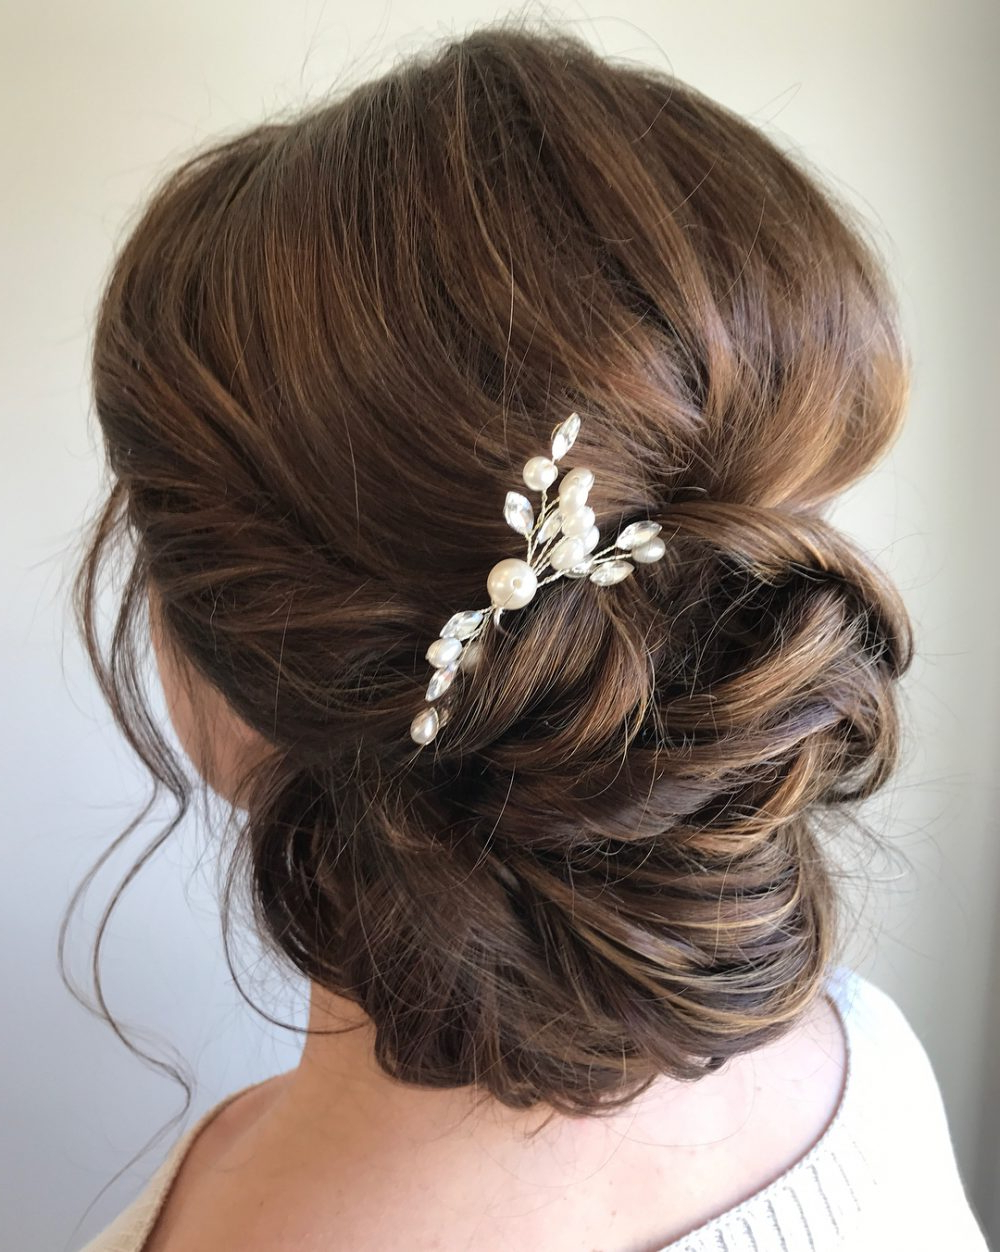 33 Breathtaking Loose Updos That Are Trendy For 2019 Throughout Most Up To Date Messy Bun Prom Hairstyles With Long Side Pieces (View 7 of 20)